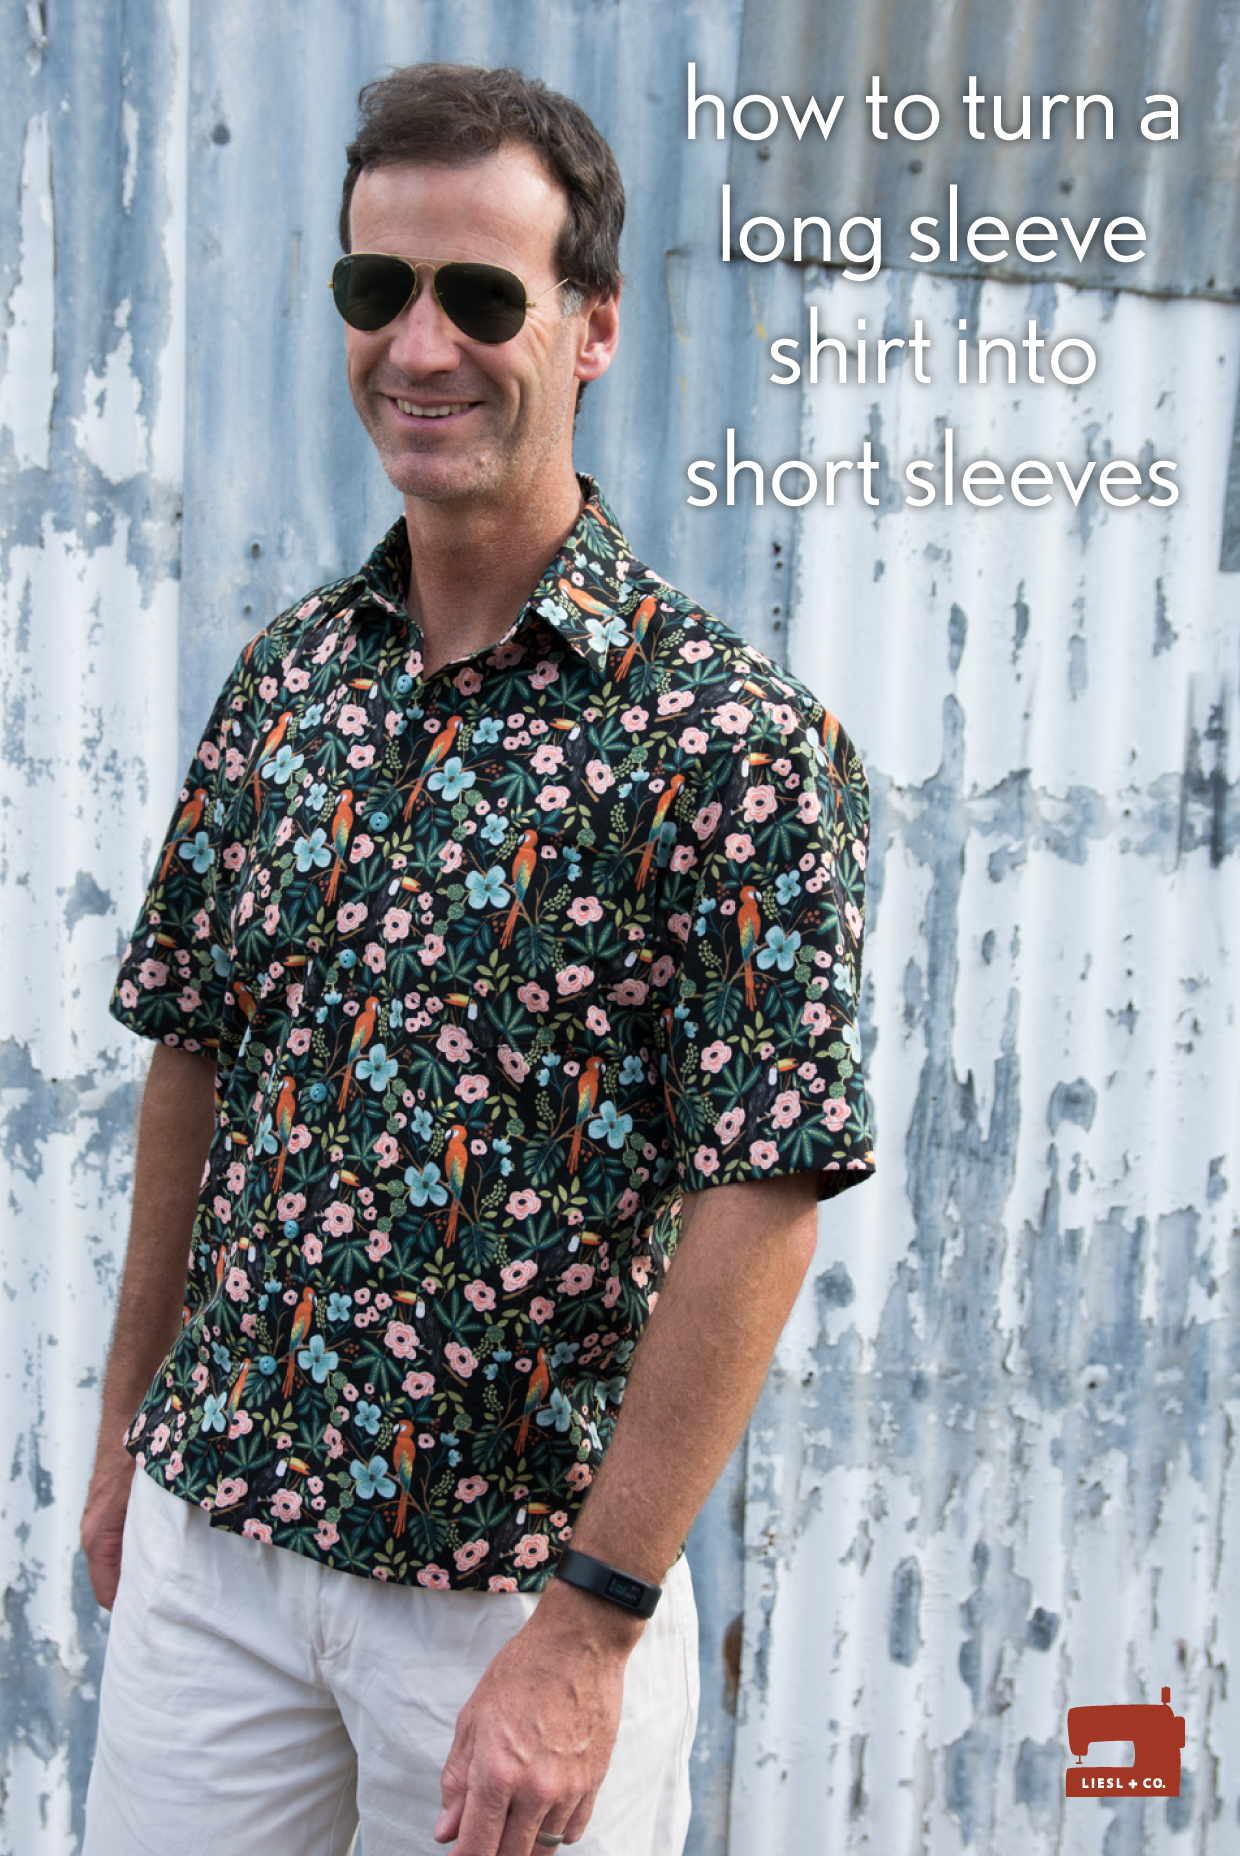 How To Turn A Long Sleeve Shirt Into Short Sleeves